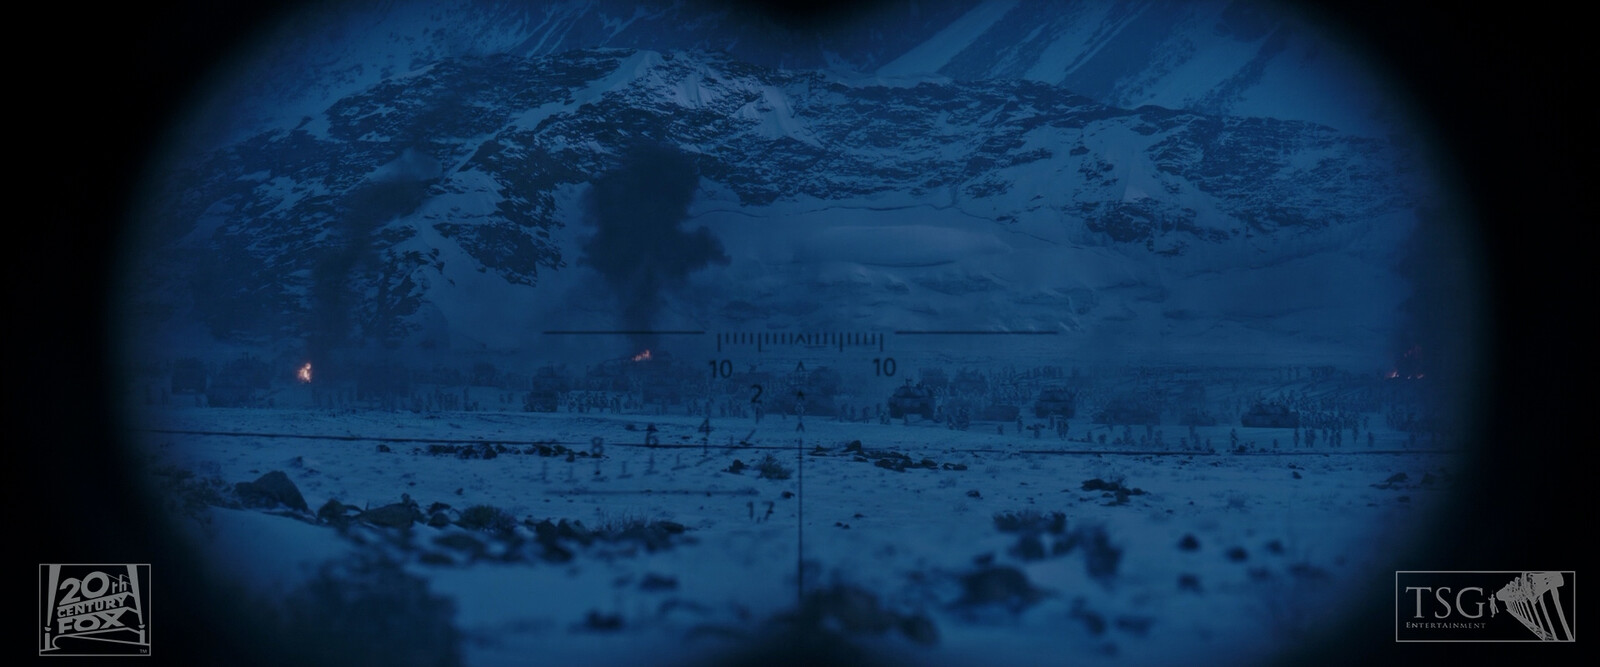 Full Digital Matte Painting. (with finishing assistance from fellow DMP artist, Matthew Munro)